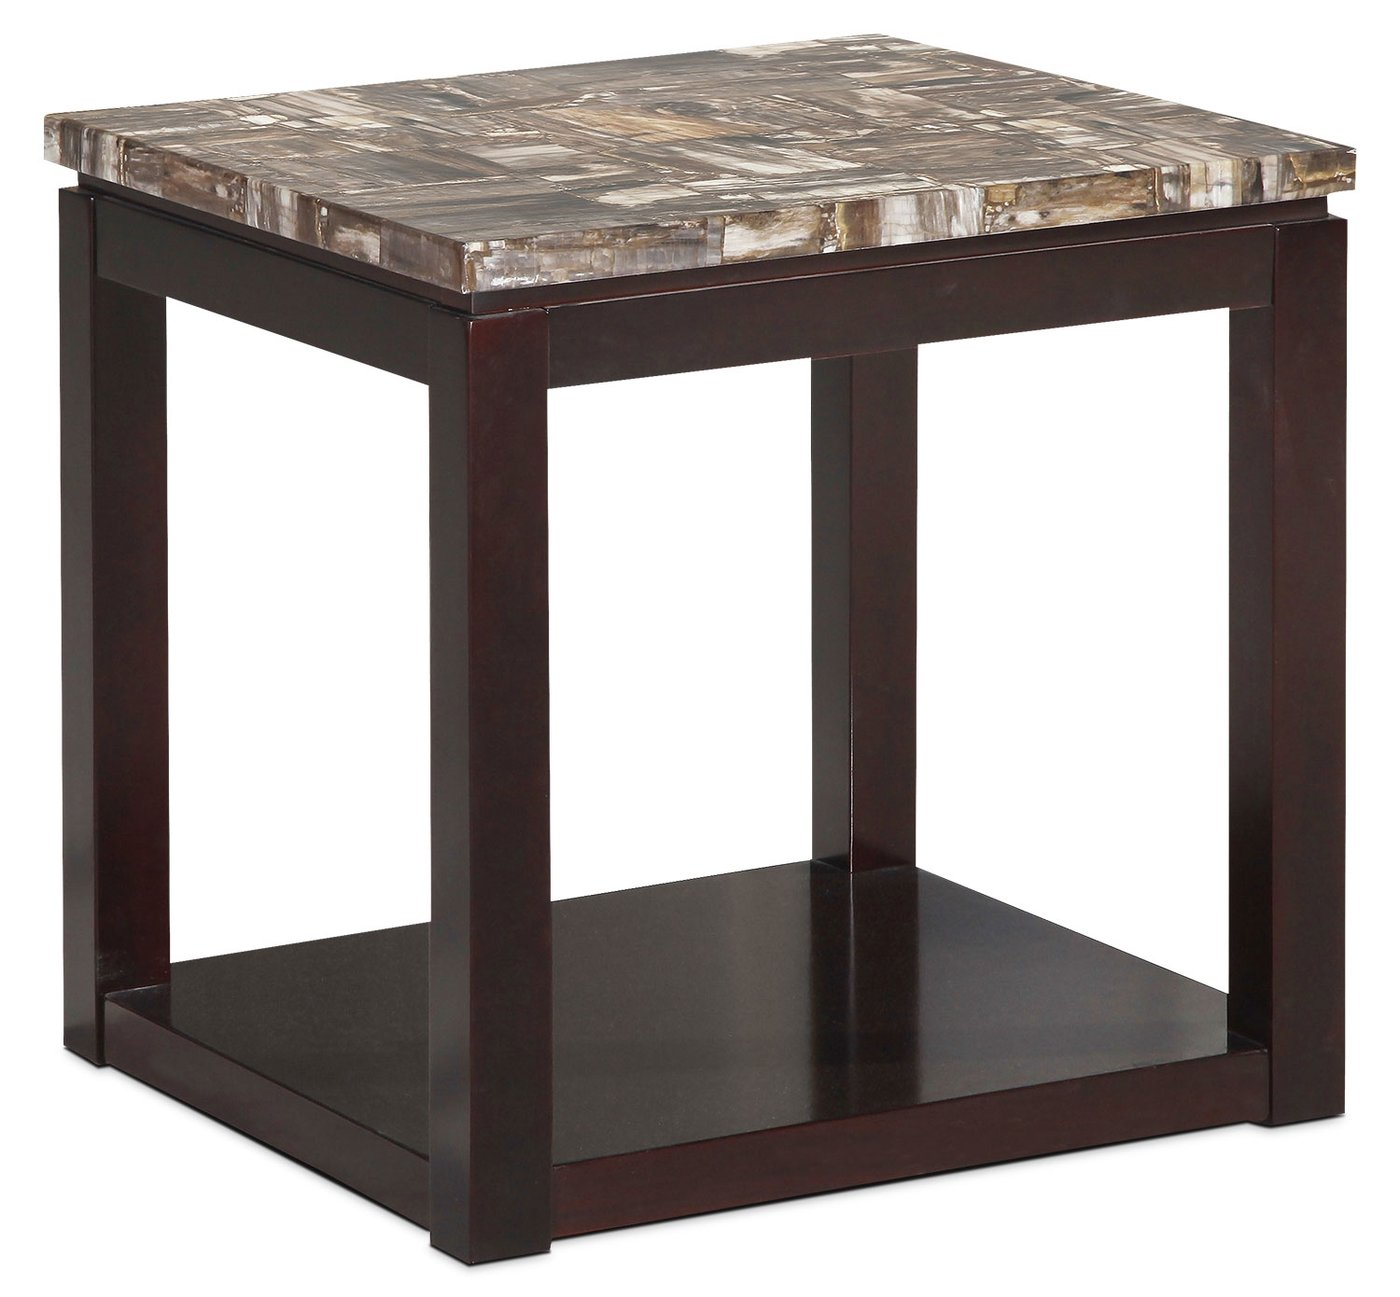 sicily end table brown the brick chocolate tables tap expand hampton bay outdoor cushions marble top round accent custom small room lamp furniture magnolia white distressed wood